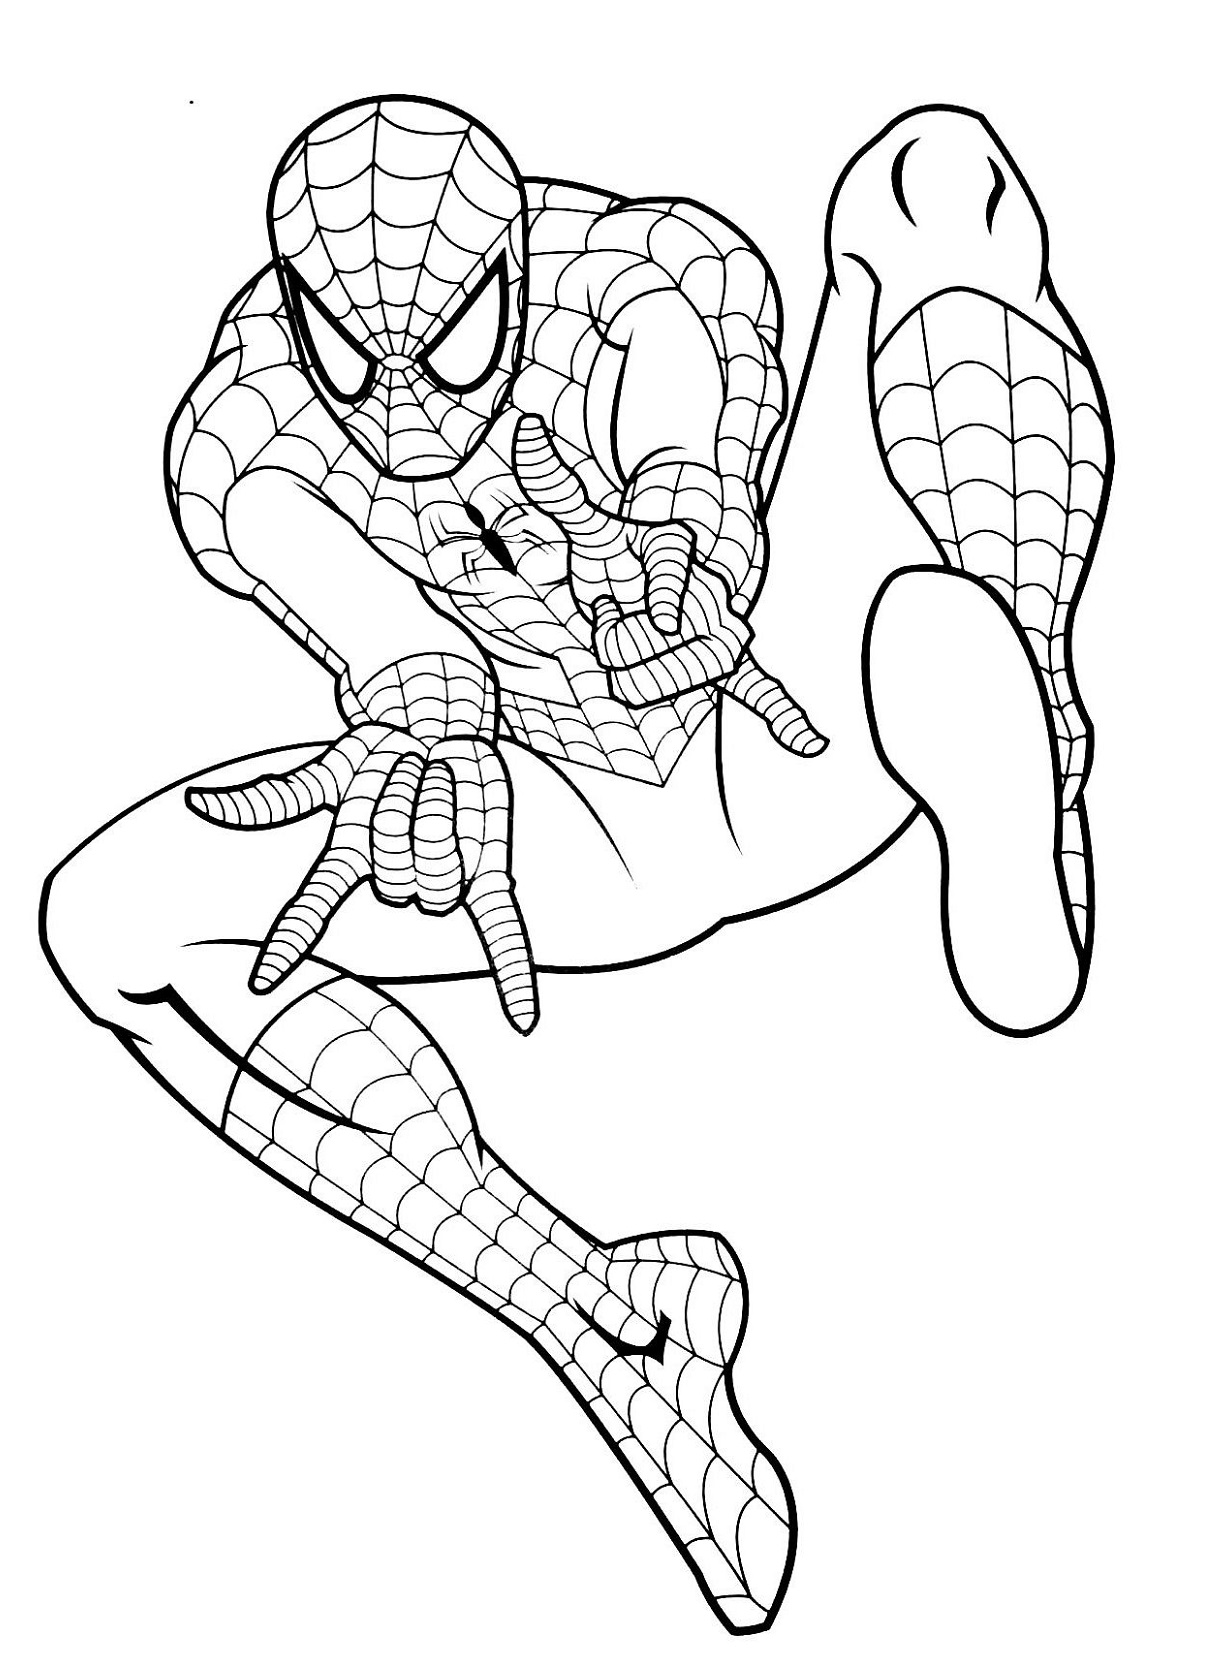 printable spiderman coloring pages free printable spiderman coloring pages for kids spiderman pages coloring printable